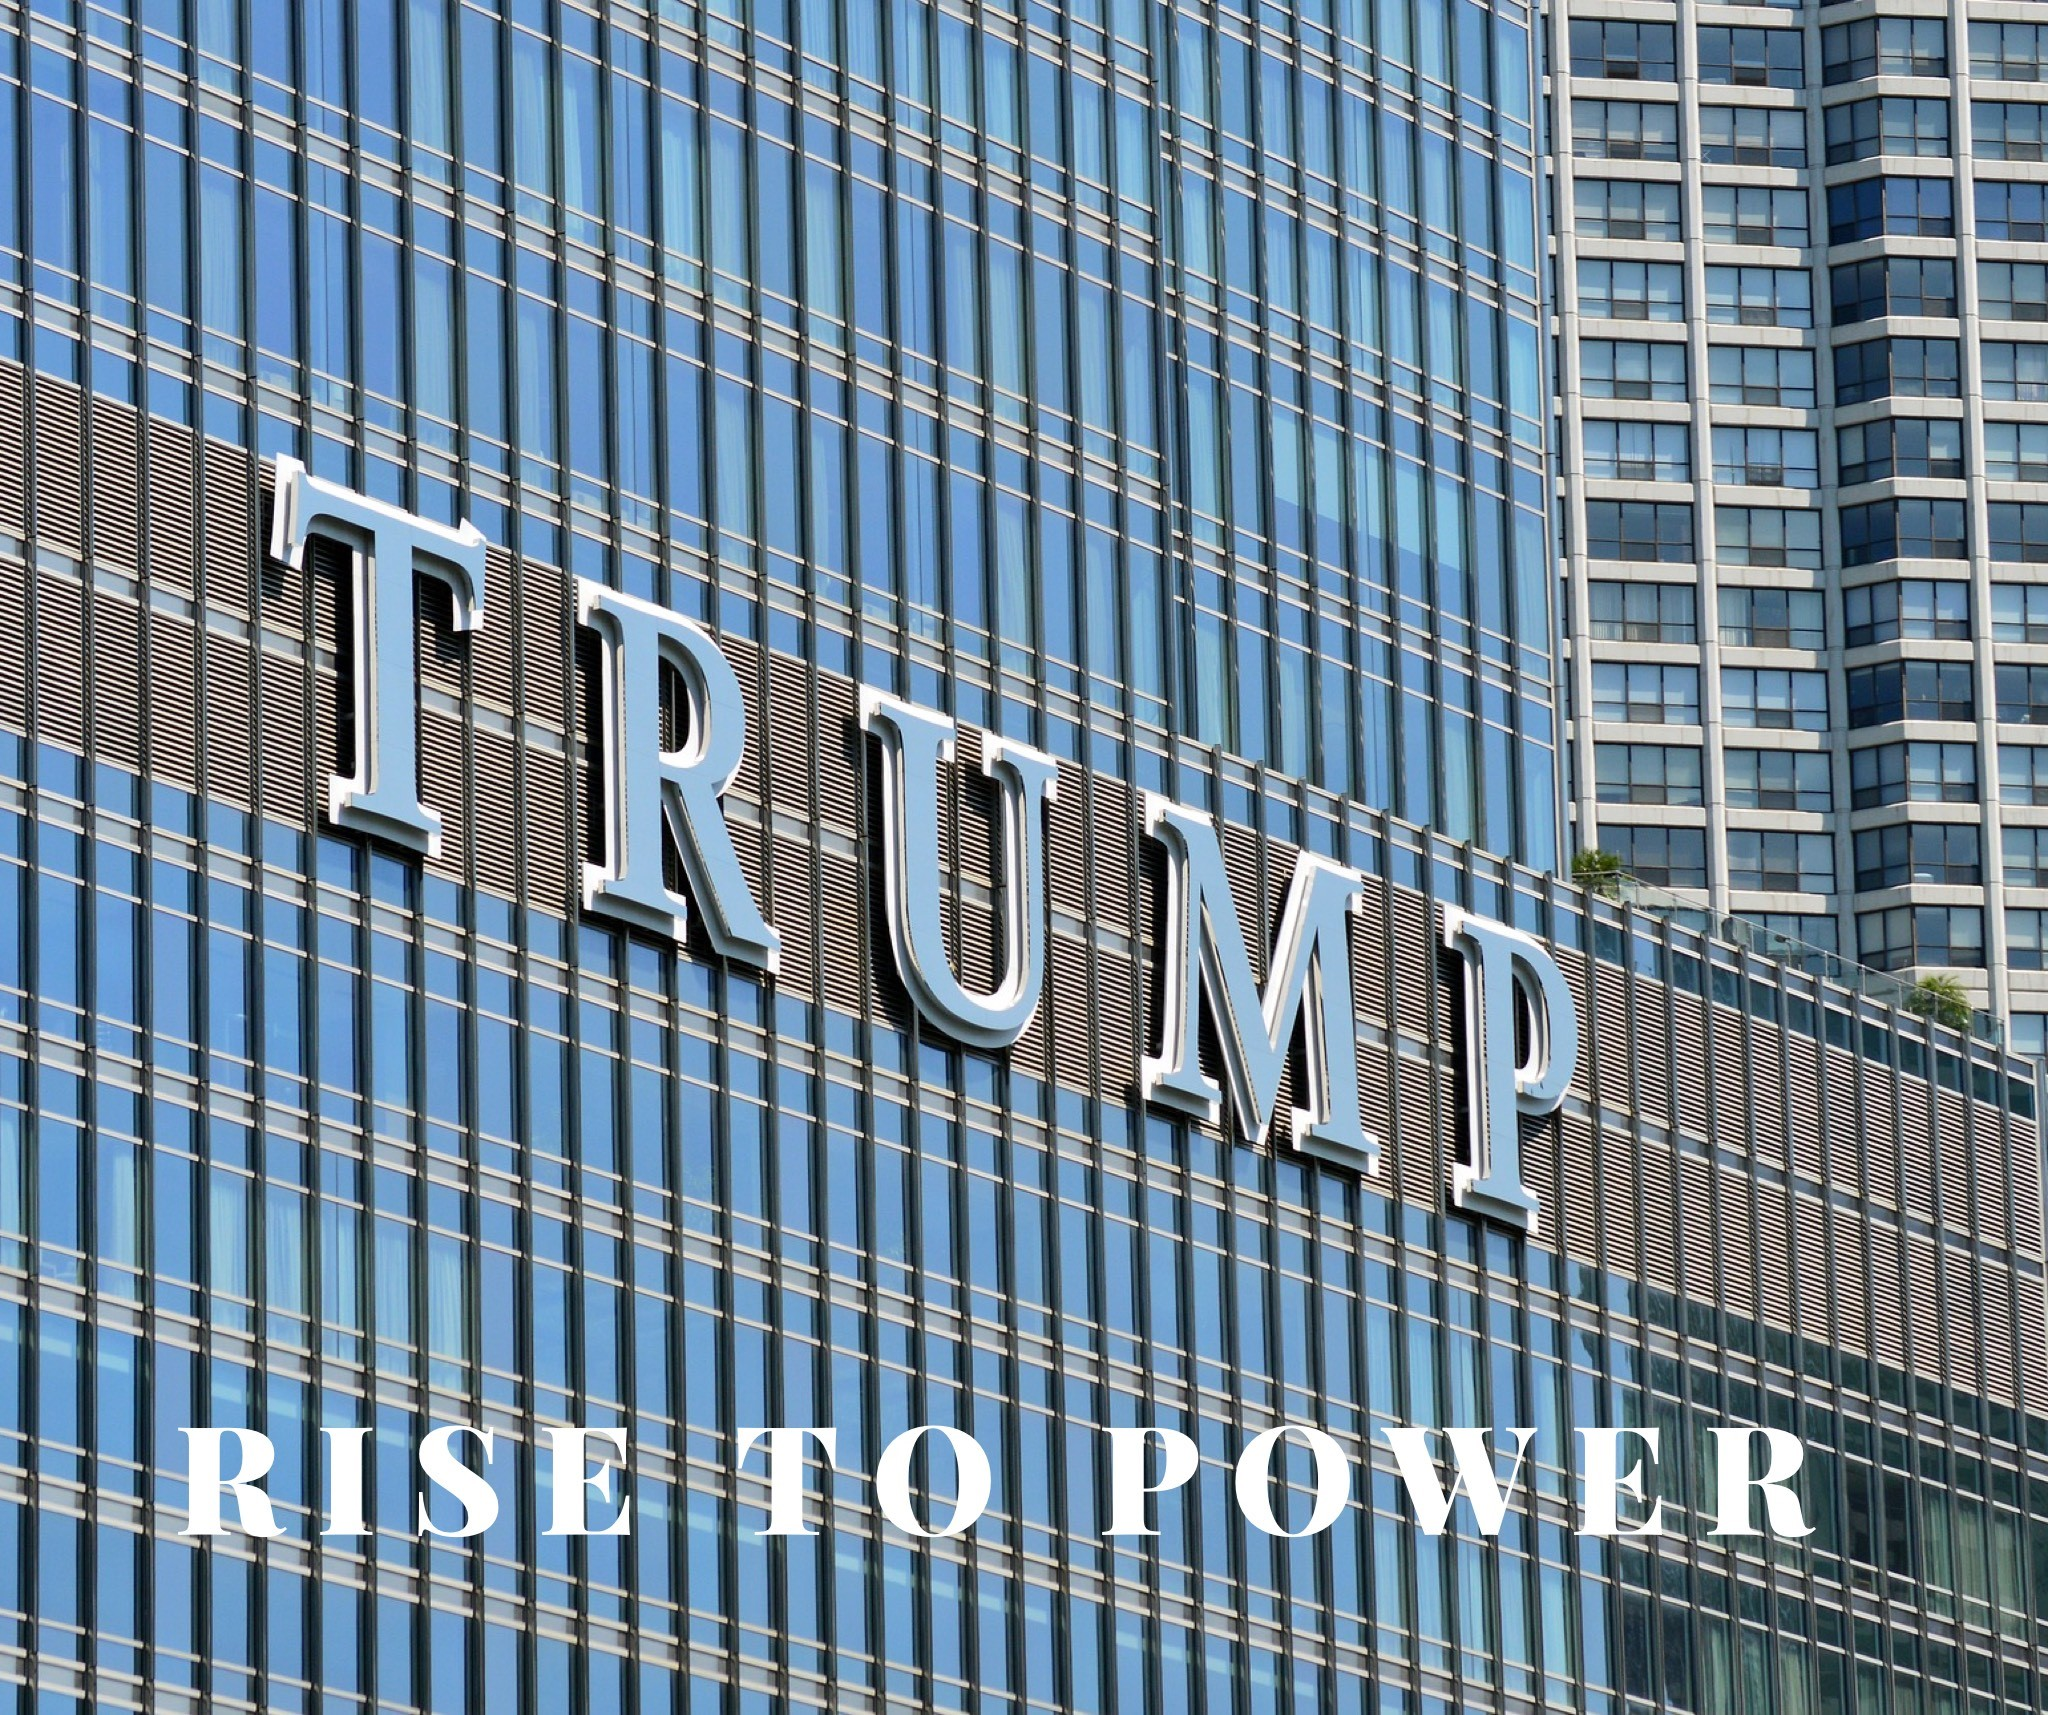 Trump rise to power